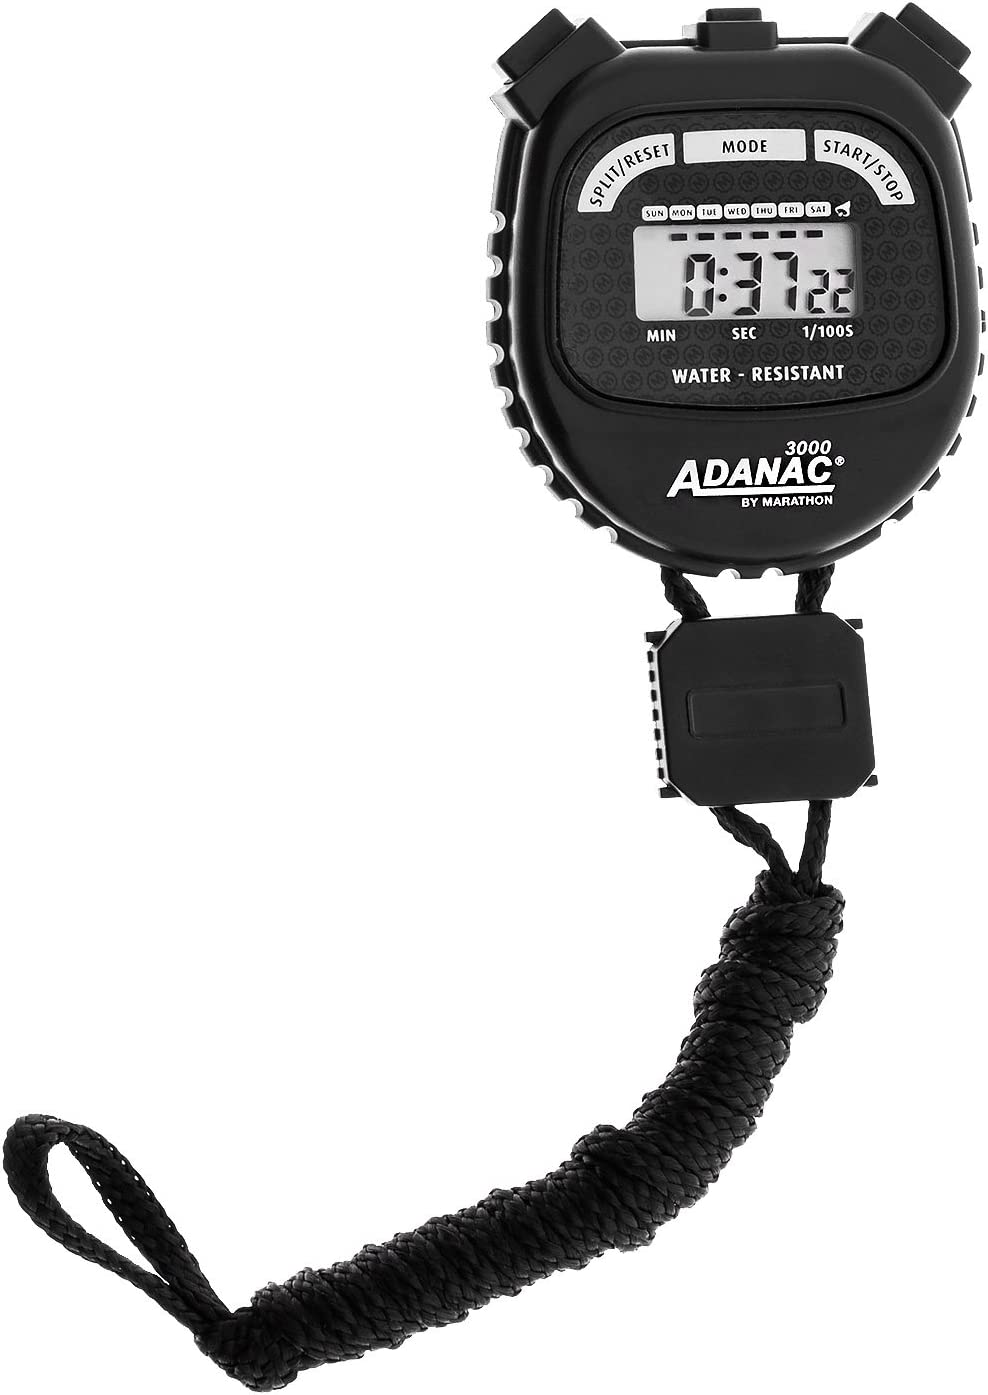 Marathon ADANAC 3000 Digital Stopwatch Timer, Water Resistant, Battery Included